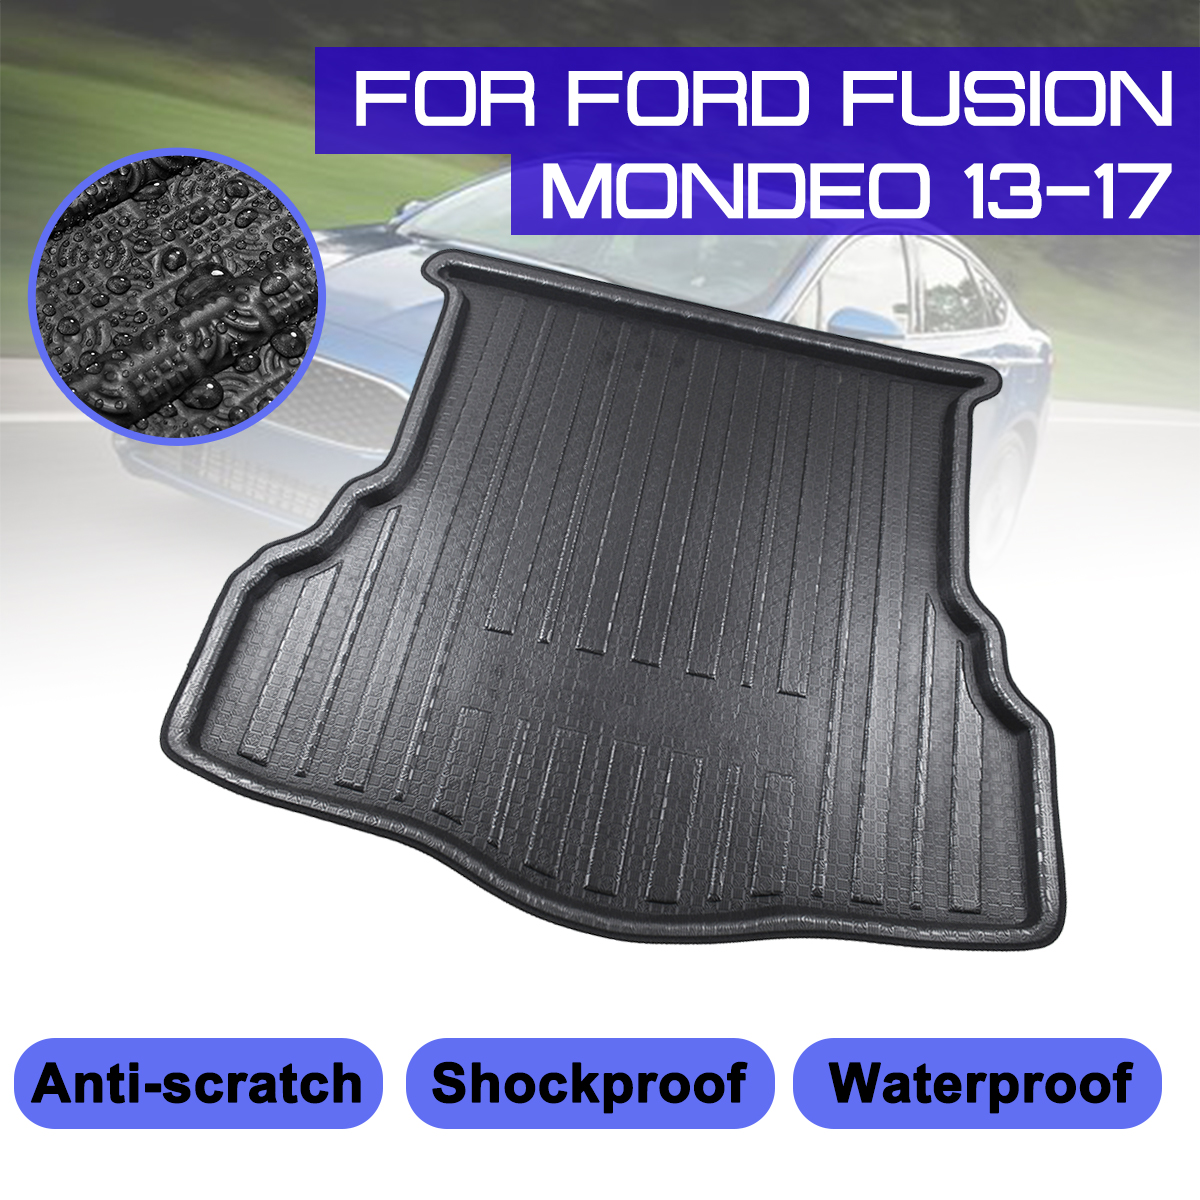 For Ford Fusion Mondeo 2013 2014 2015 2016 2017 Car Rear Trunk Boot Mat Waterproof Floor Mats Carpet Anti Mud Tray Cargo Liner